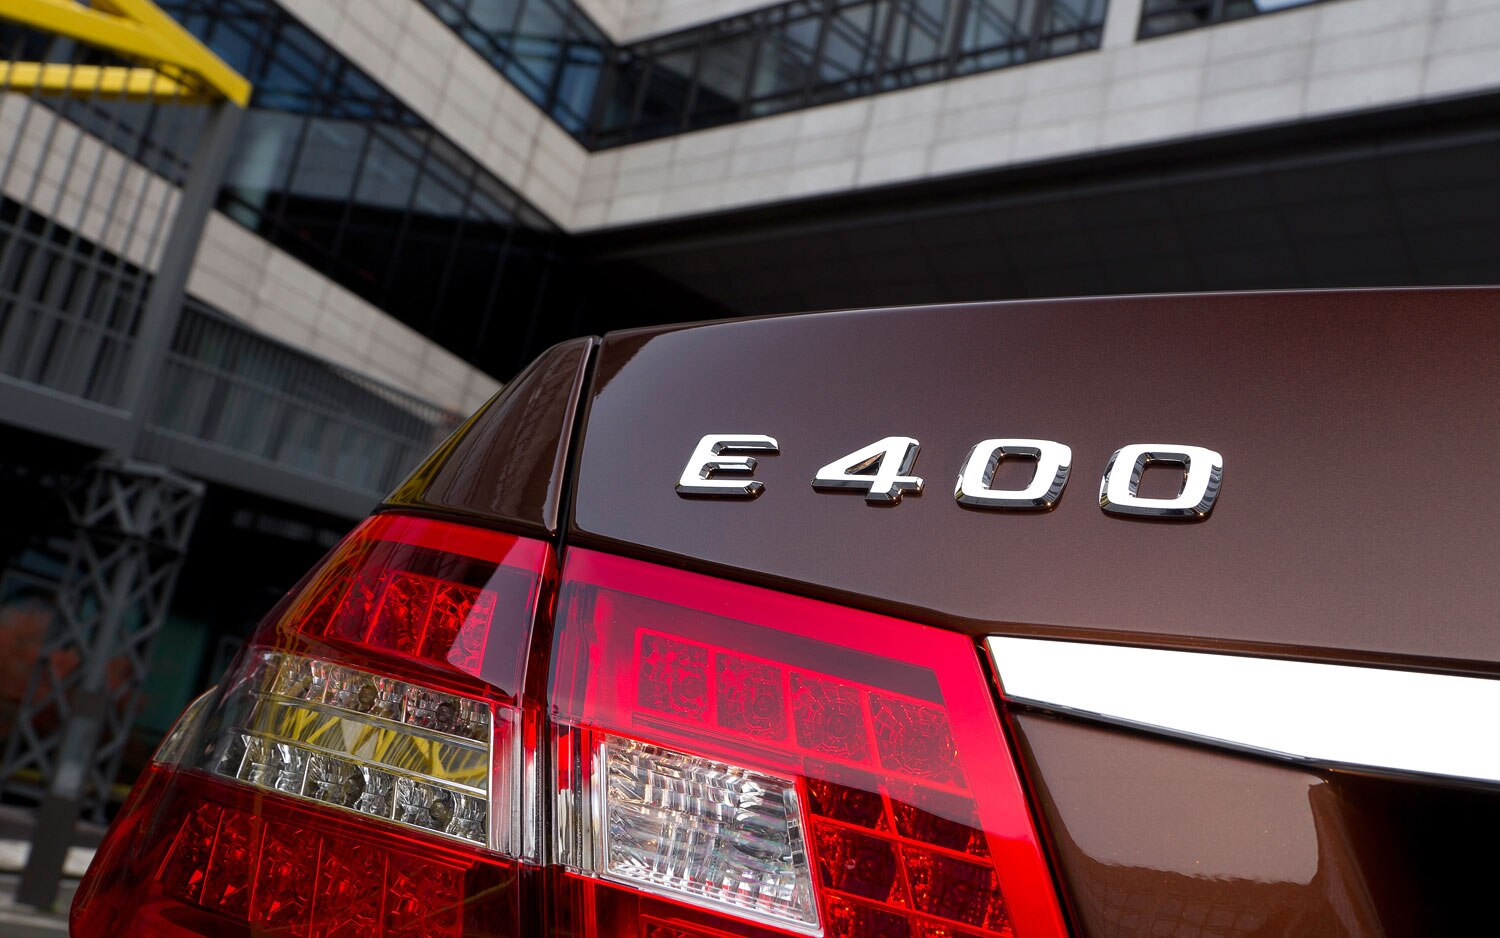 2013 Mercedes Benz E400 Hybrid Badge Closeup1